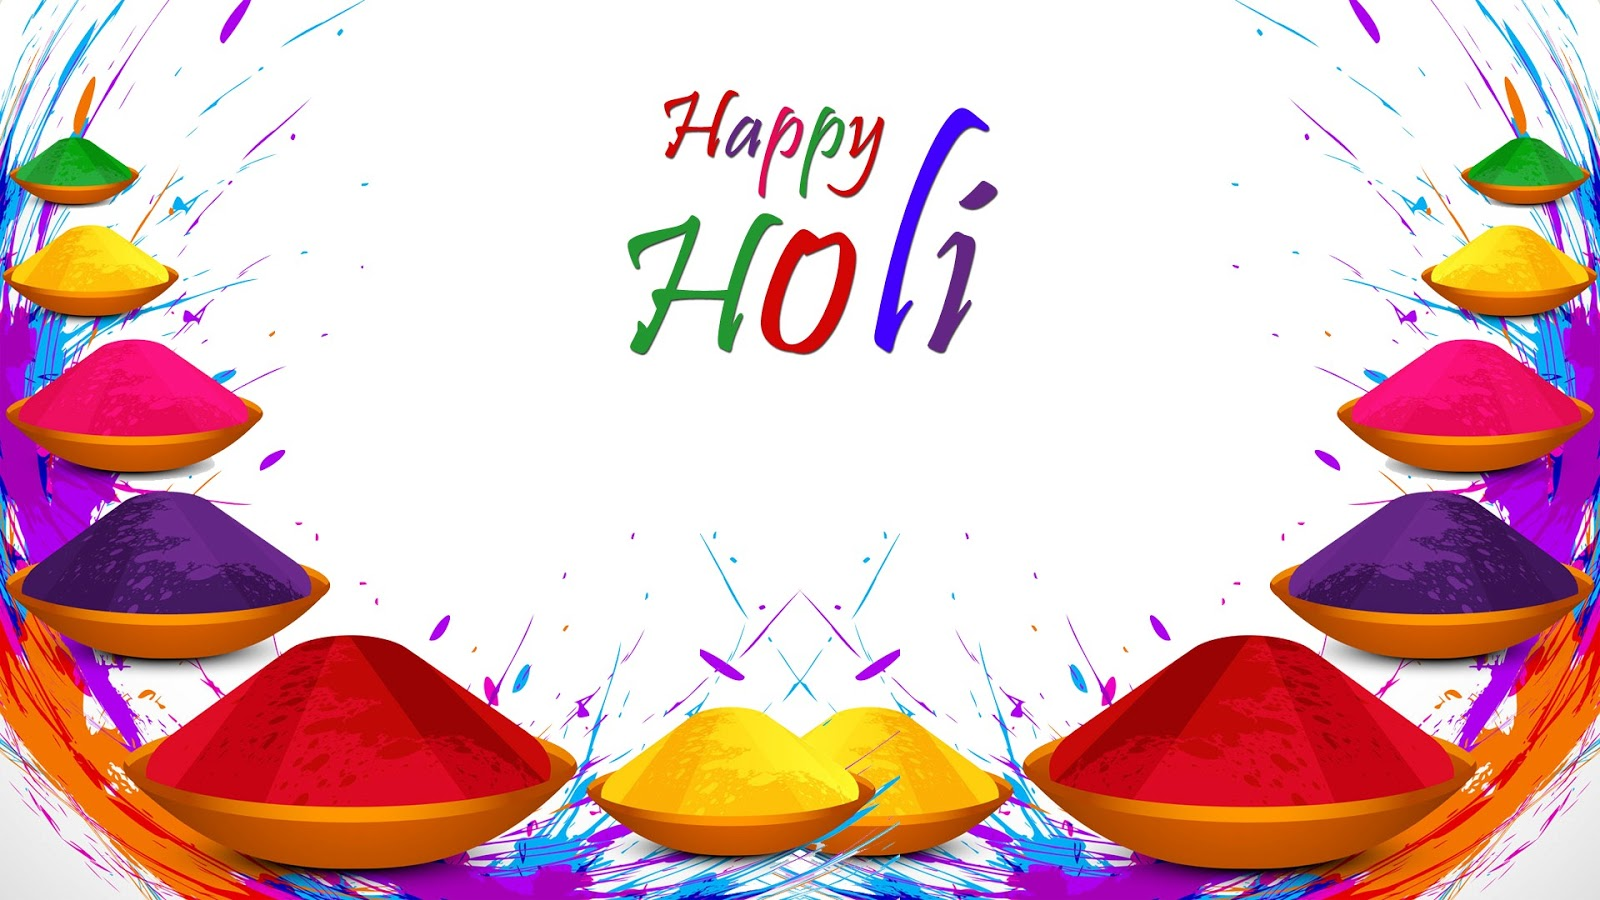 Happy Holi Desktop HD Pics - Holi Shayari Images 2019 new